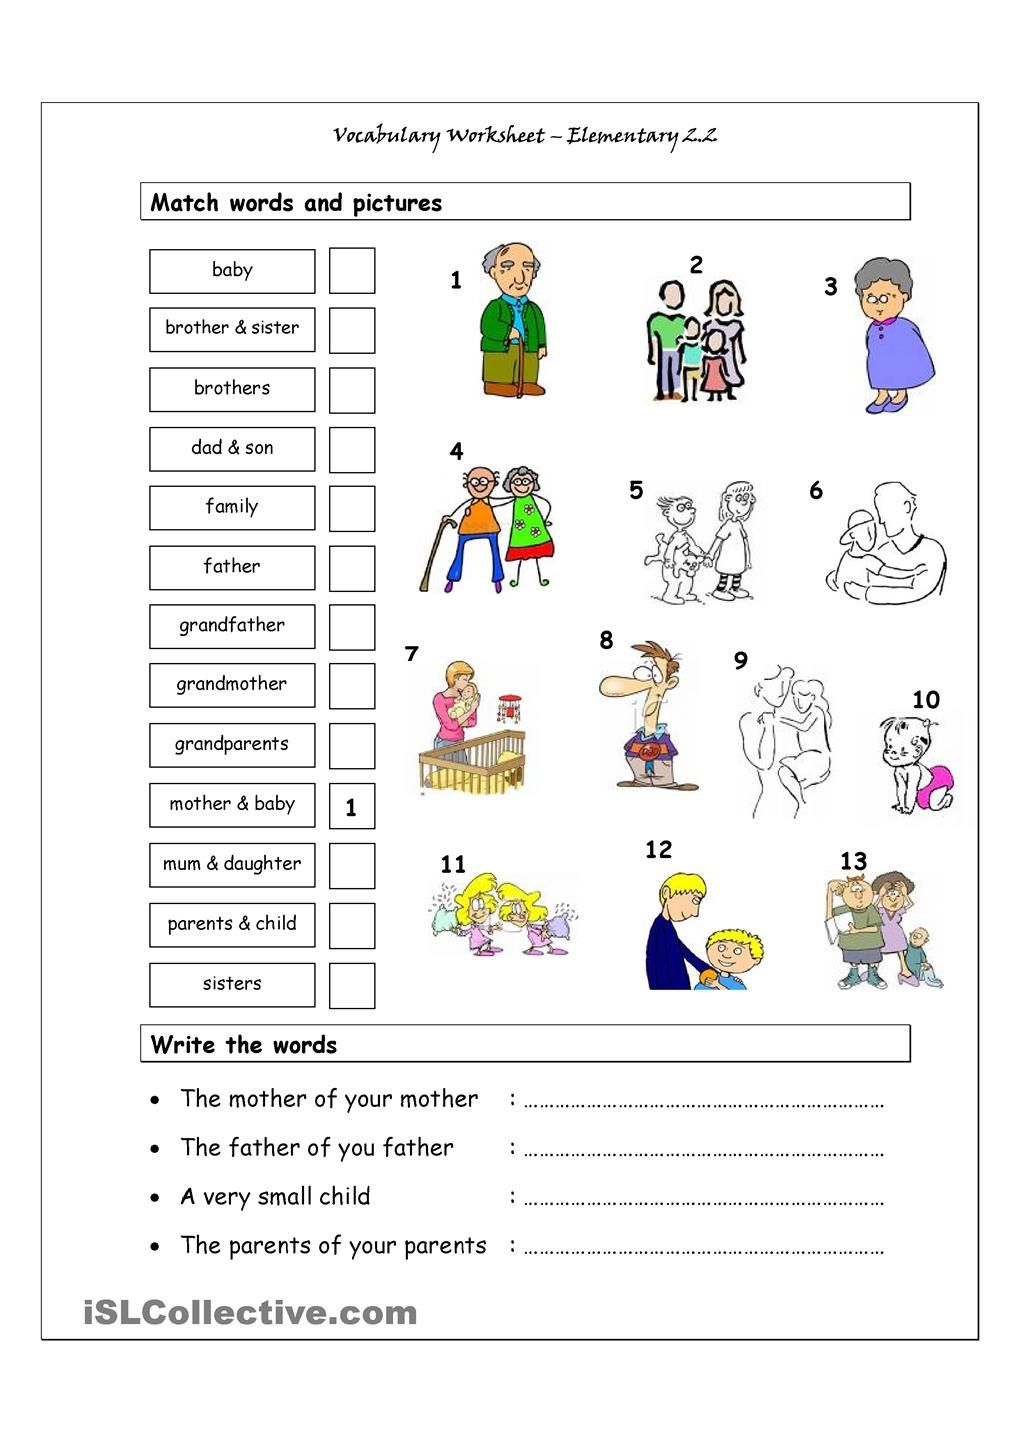 Worksheets Esol Worksheets vocabulary matching worksheet elementary 2 family esol grammar worksheets